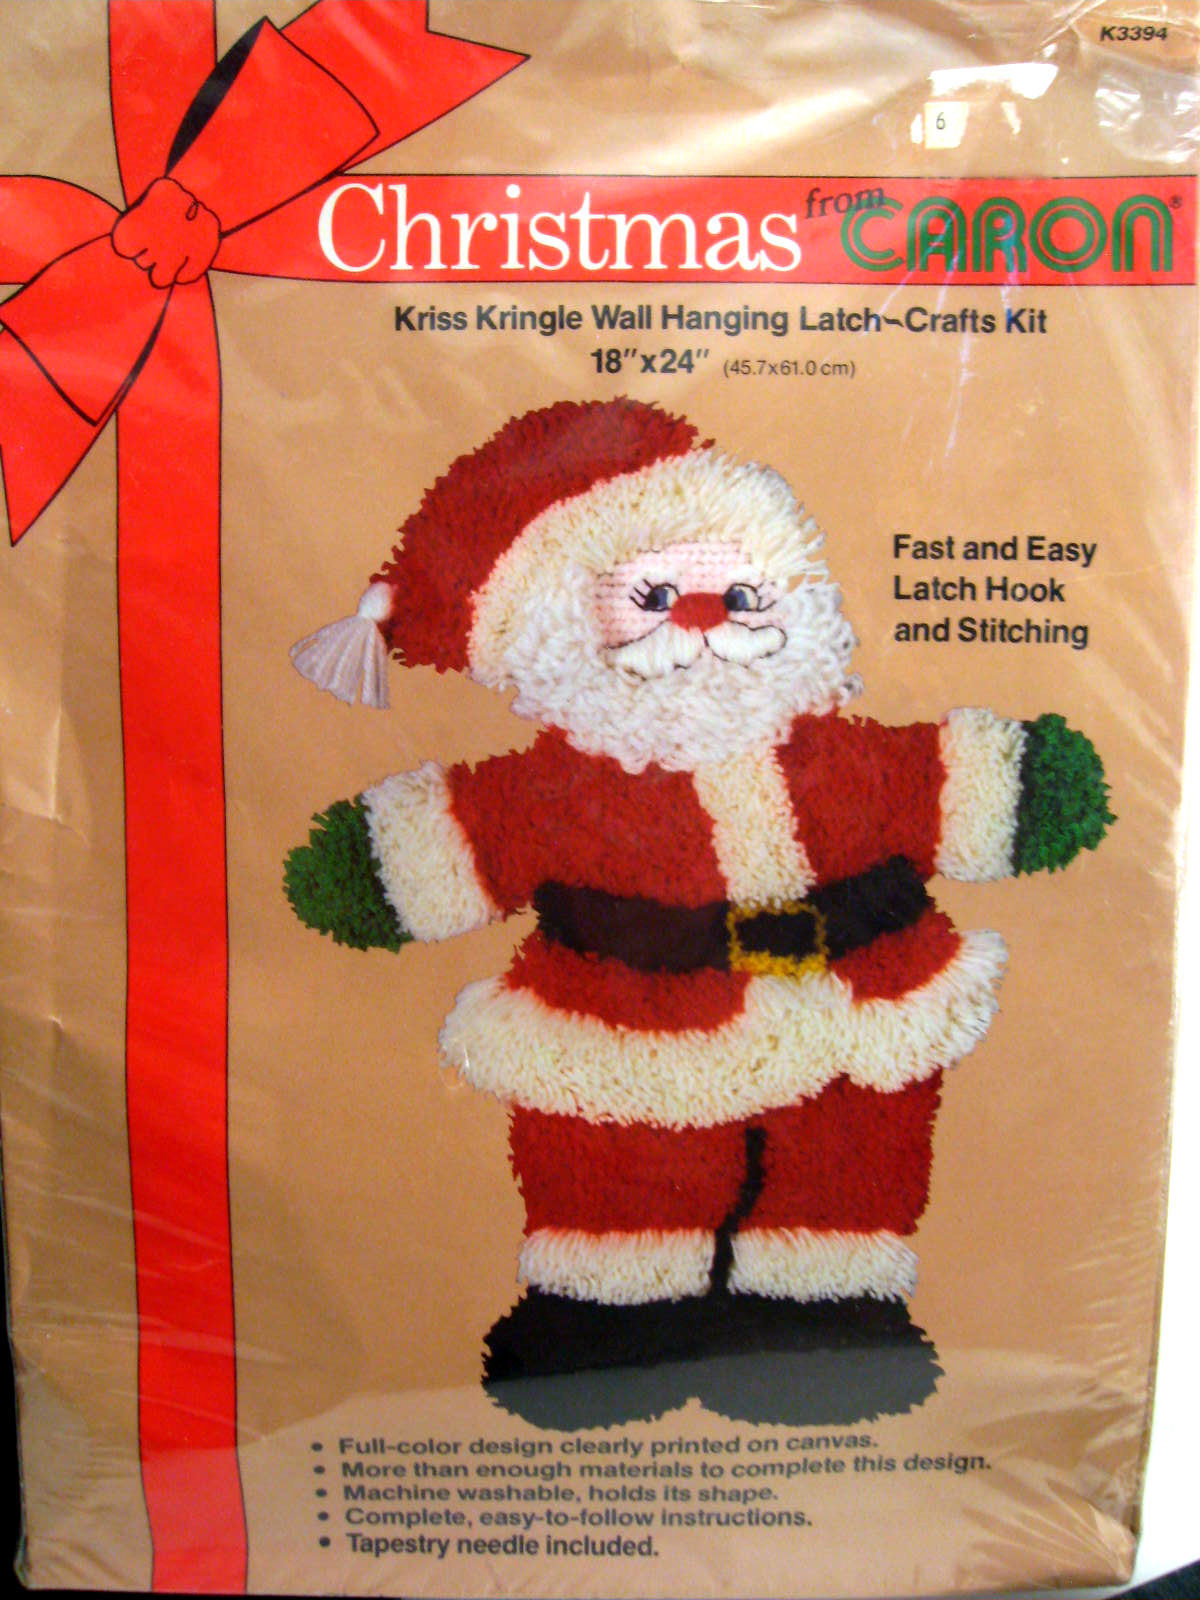 Christmas From Caron Wall Hanging Latch Kit And 50 Similar Items